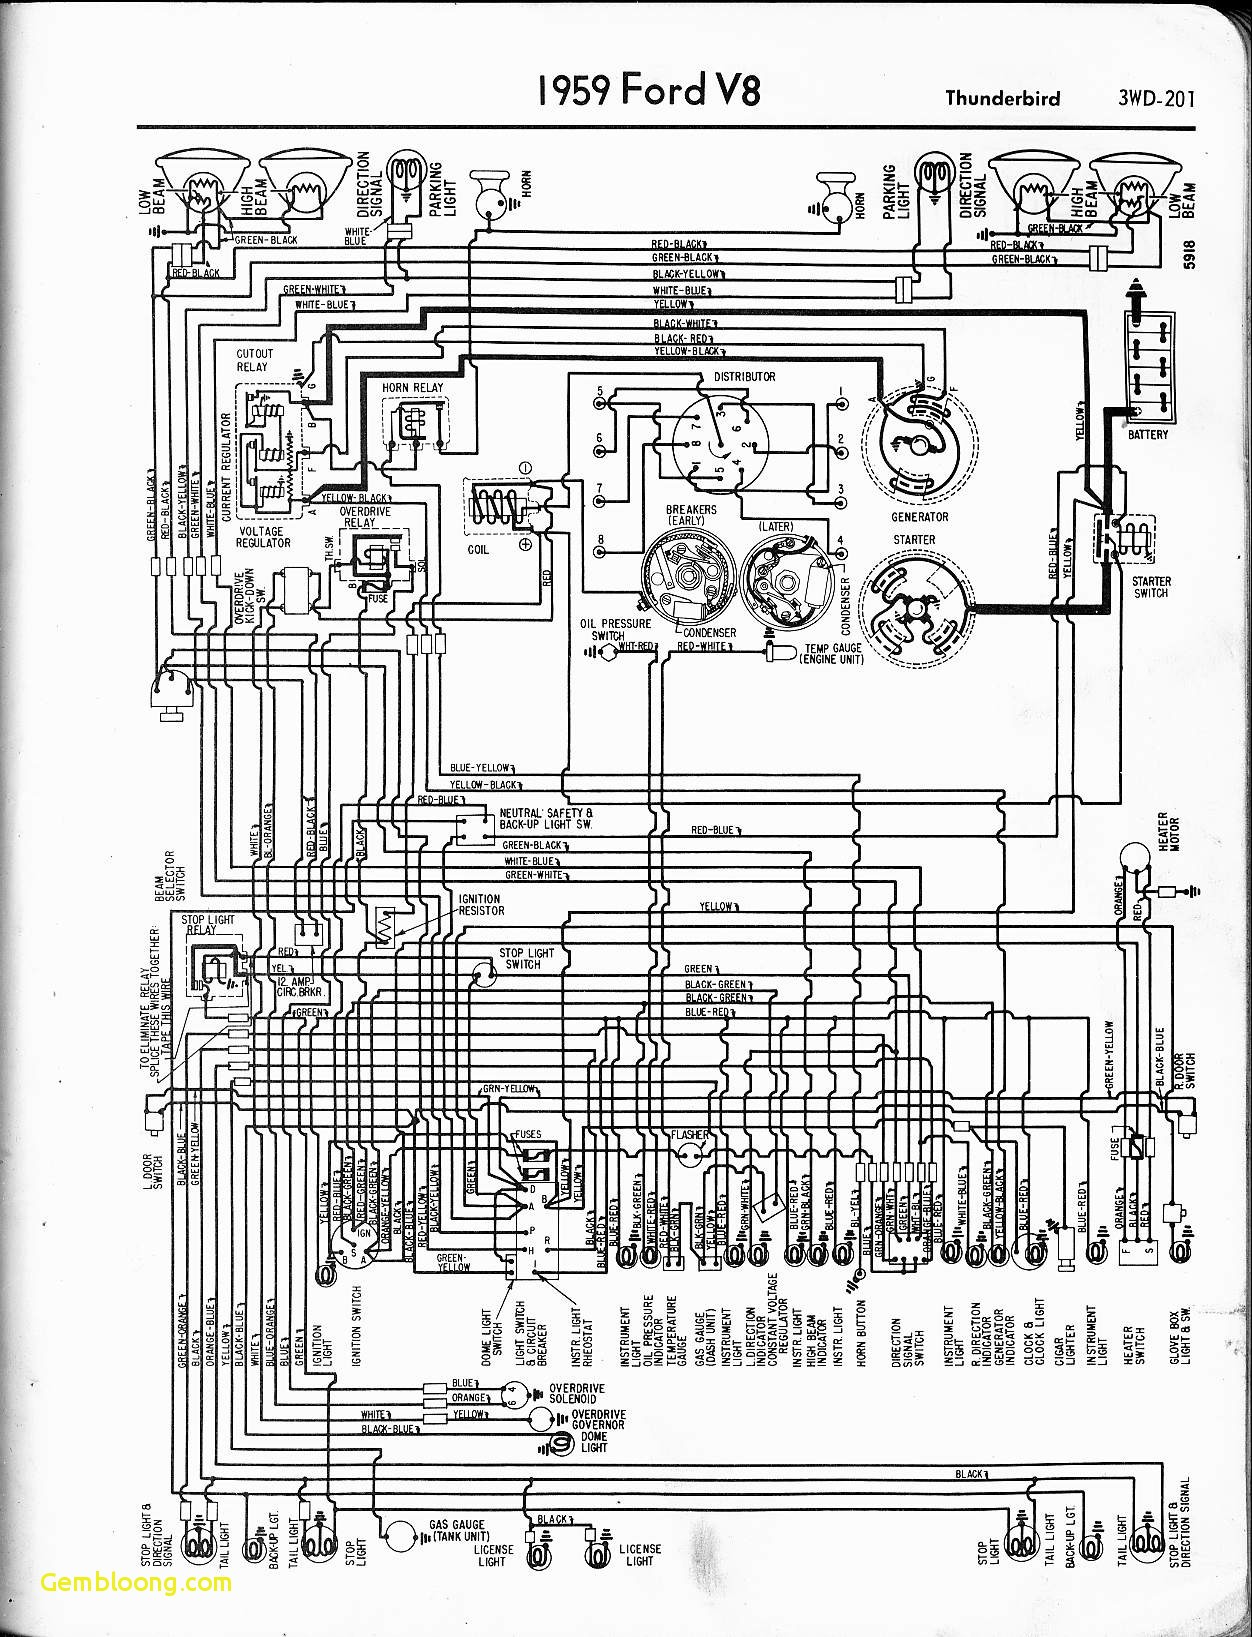 2006 ford Expedition Engine Diagram Download ford Trucks Wiring Diagrams ford F150 Wiring Diagrams Best Of 2006 ford Expedition Engine Diagram Used 2002 F250 Wiring Harness Another Blog About Wiring Diagram •